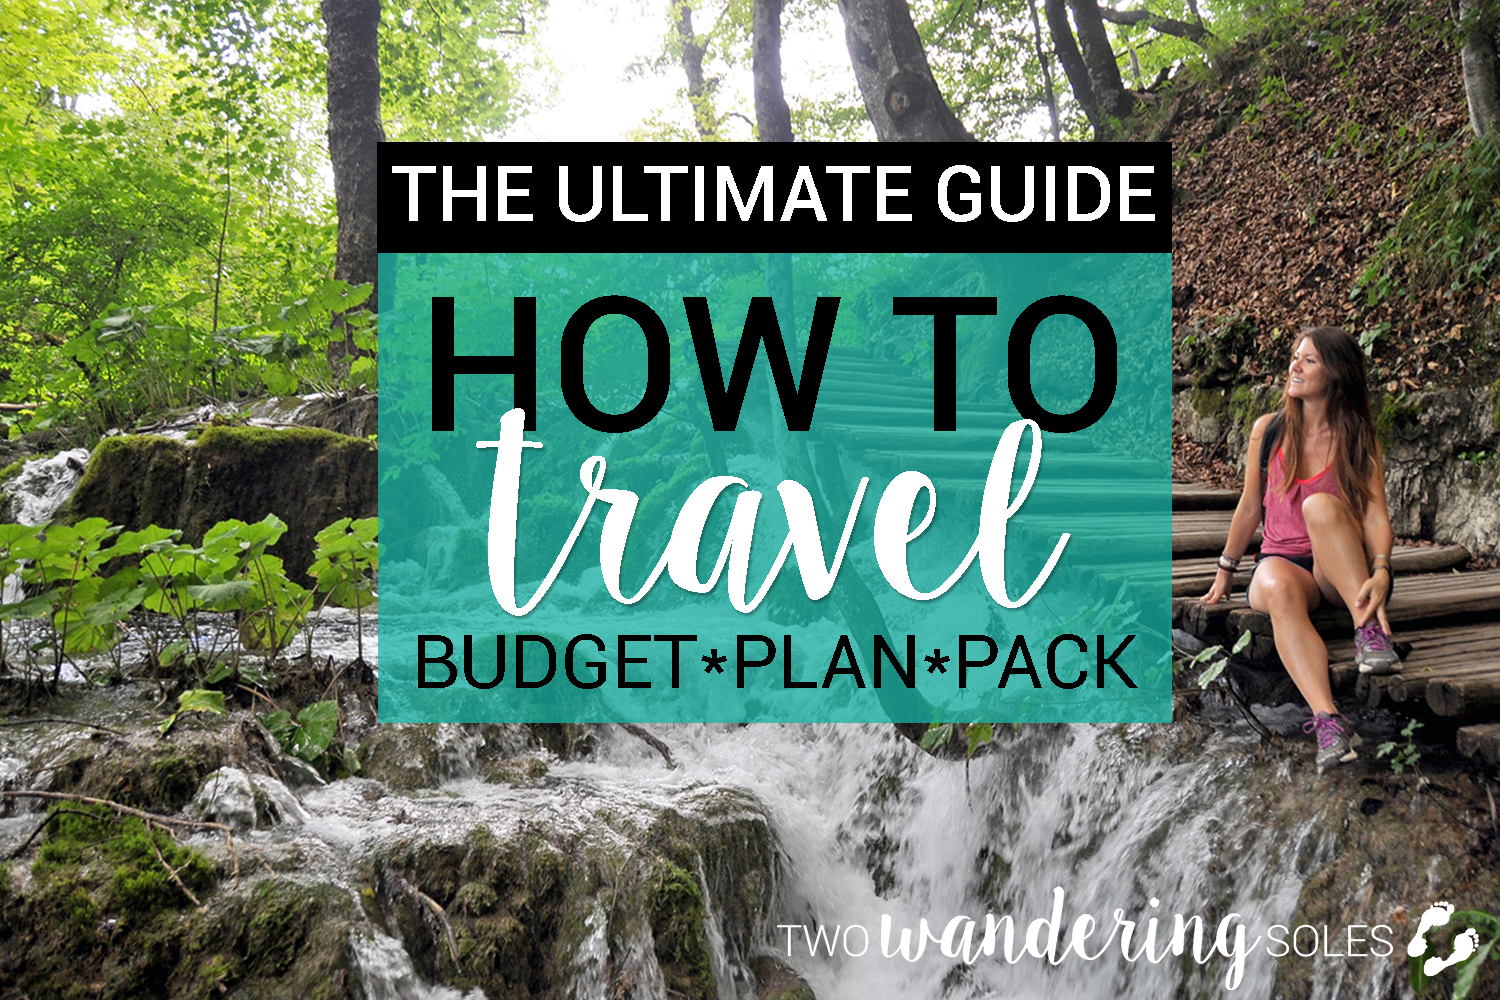 The Ultimate Guide: How to travel